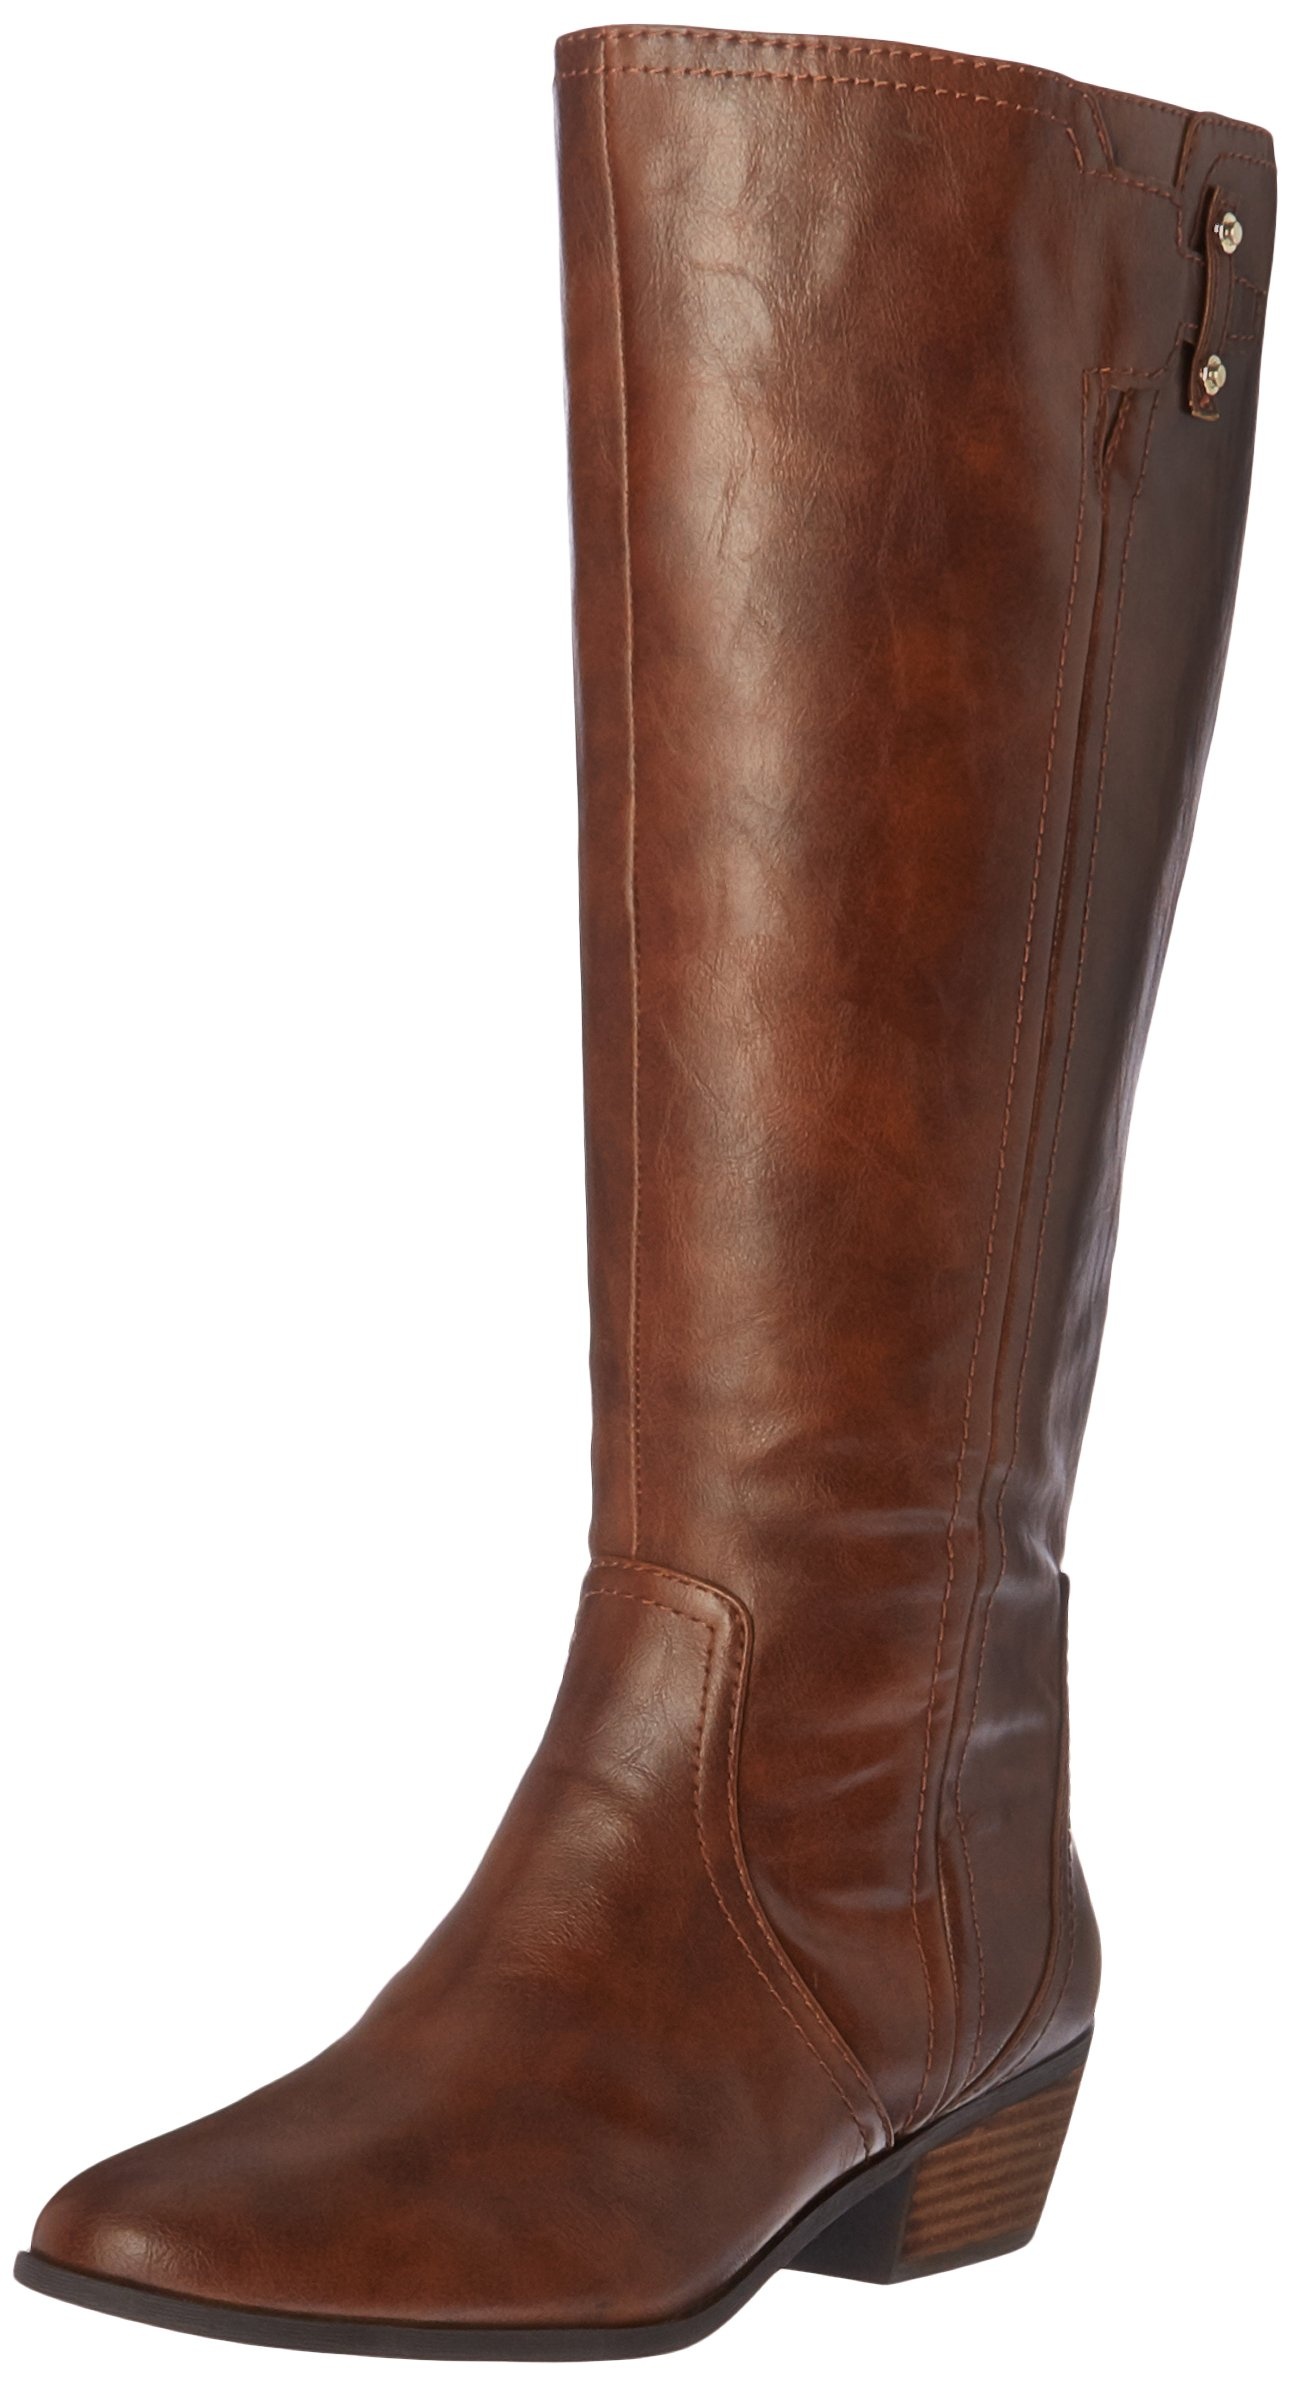 Dr. Scholl's Shoes Women's Brilliance Wide Calf Riding Boot, Whiskey, 10 M US